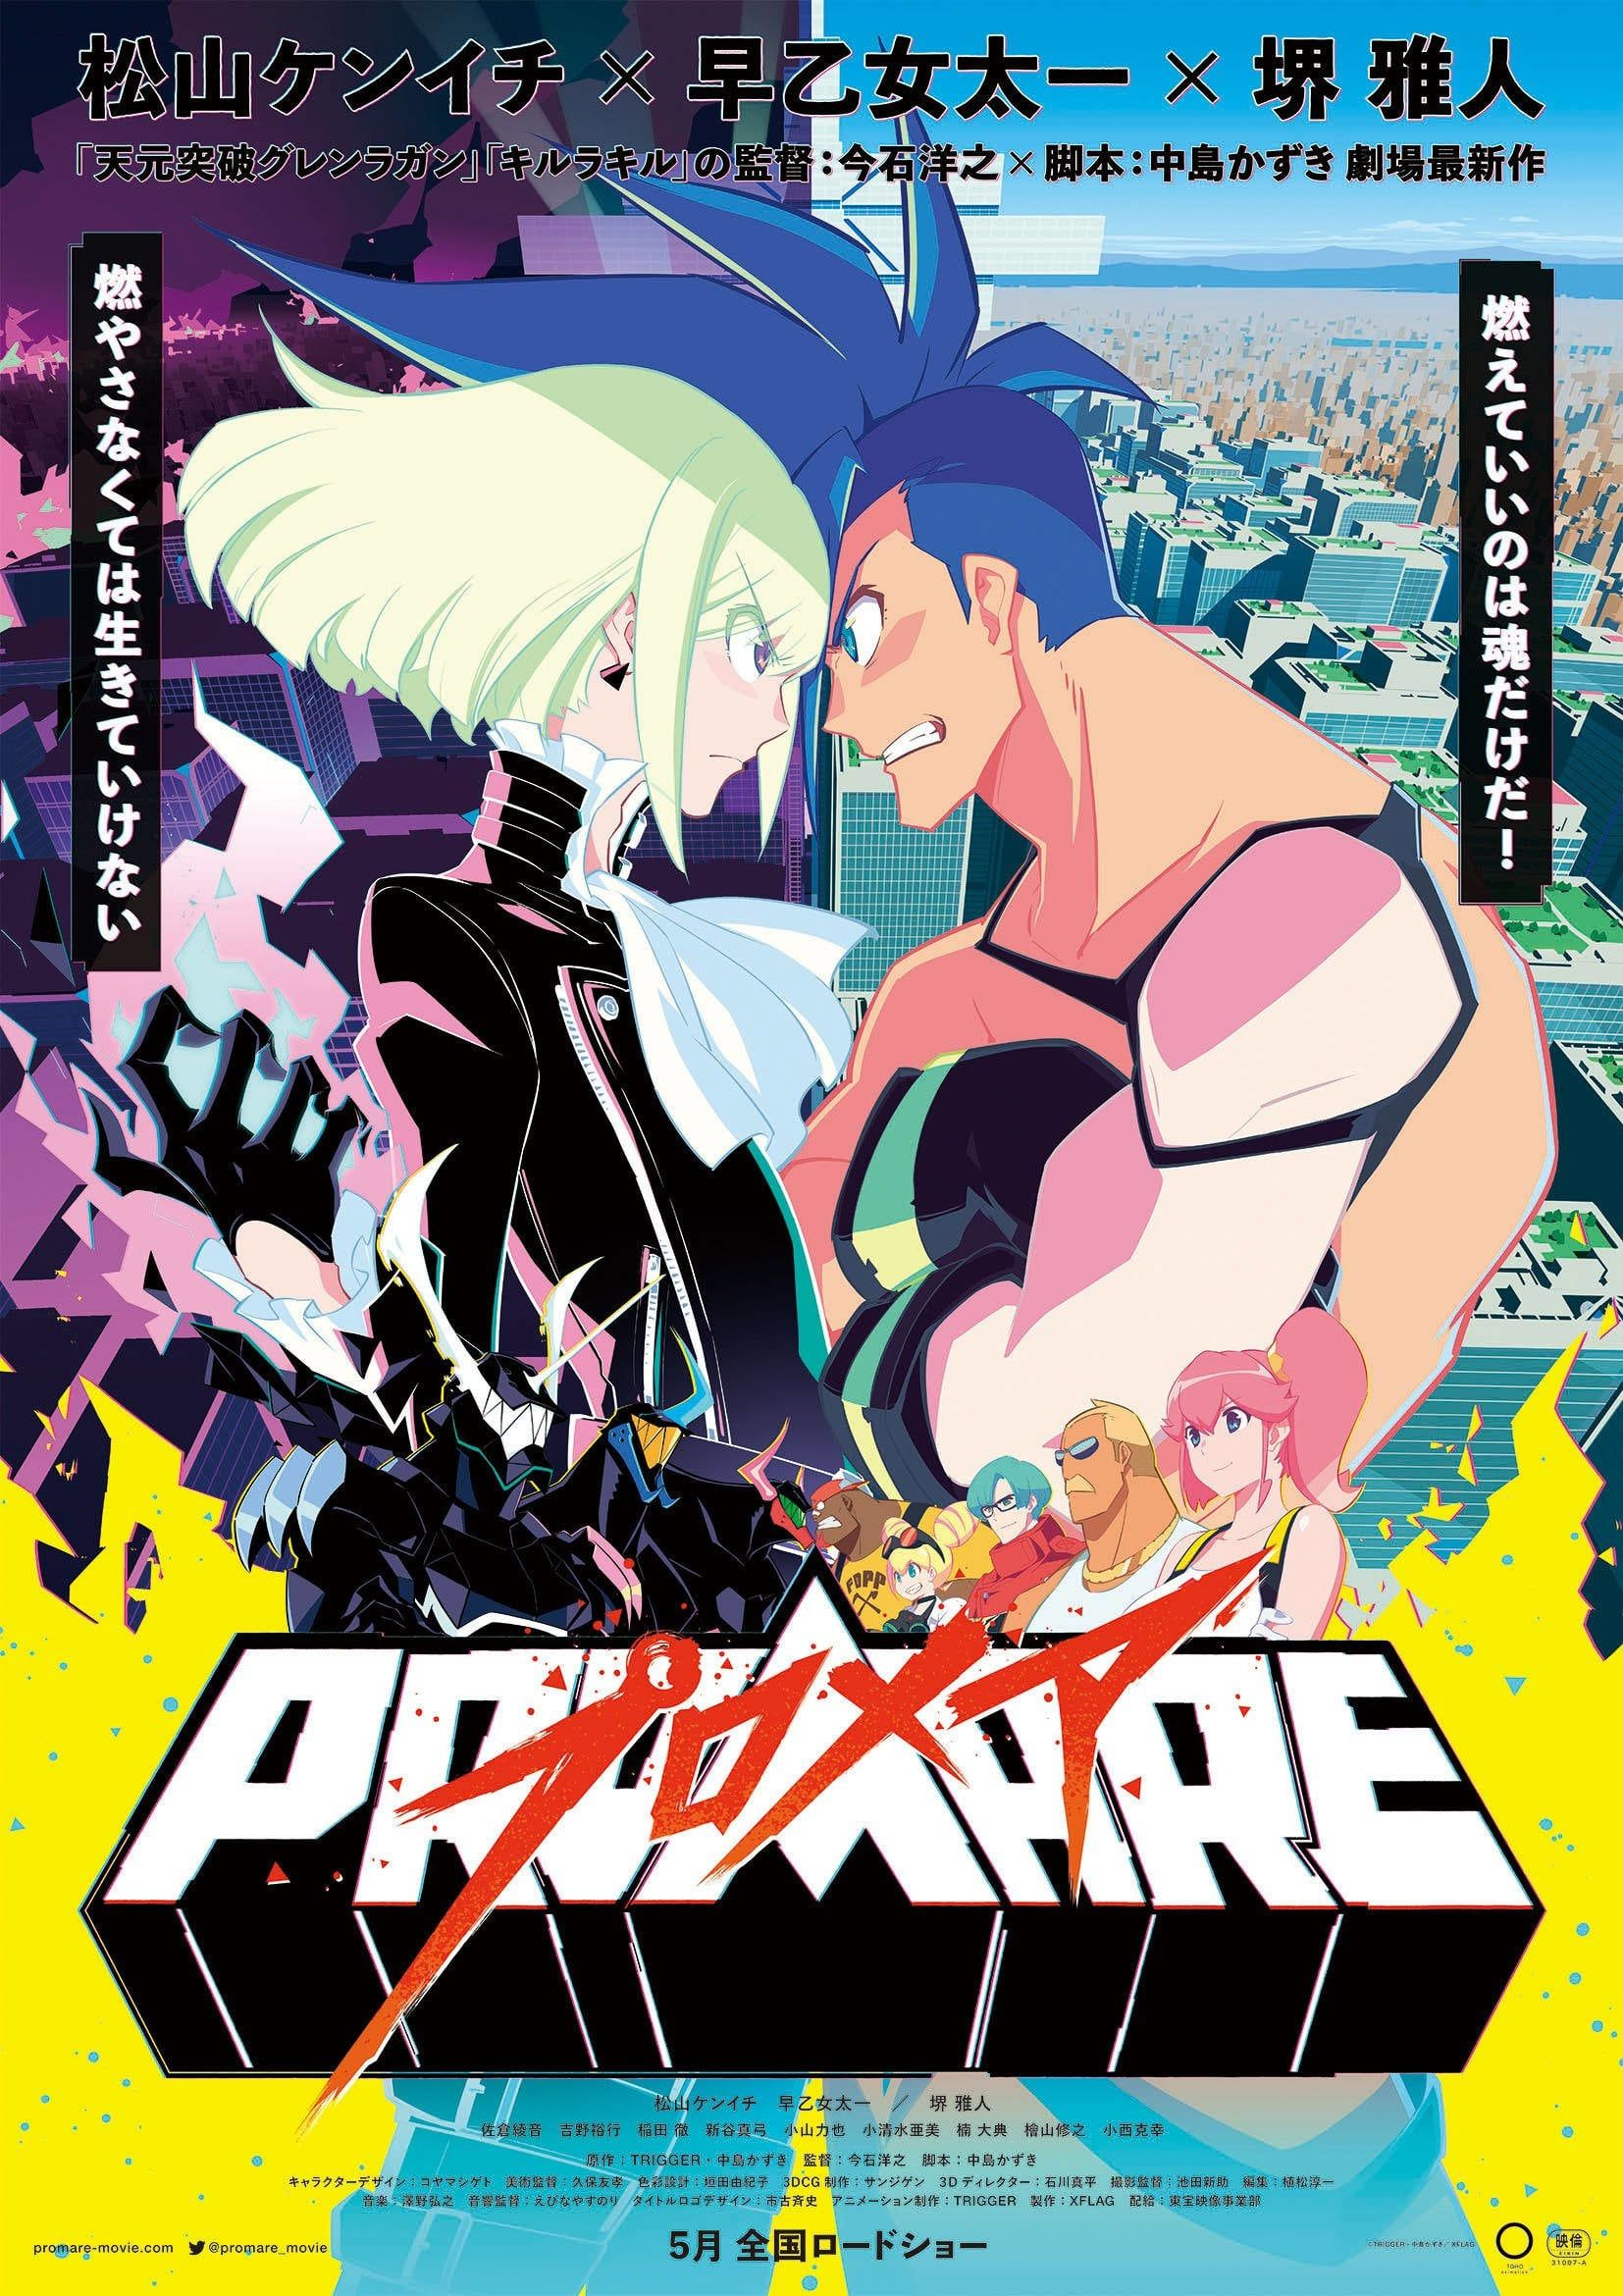 4KDOWNLOAD™ Promare (2019) ONLINE STREAMING HD1080P